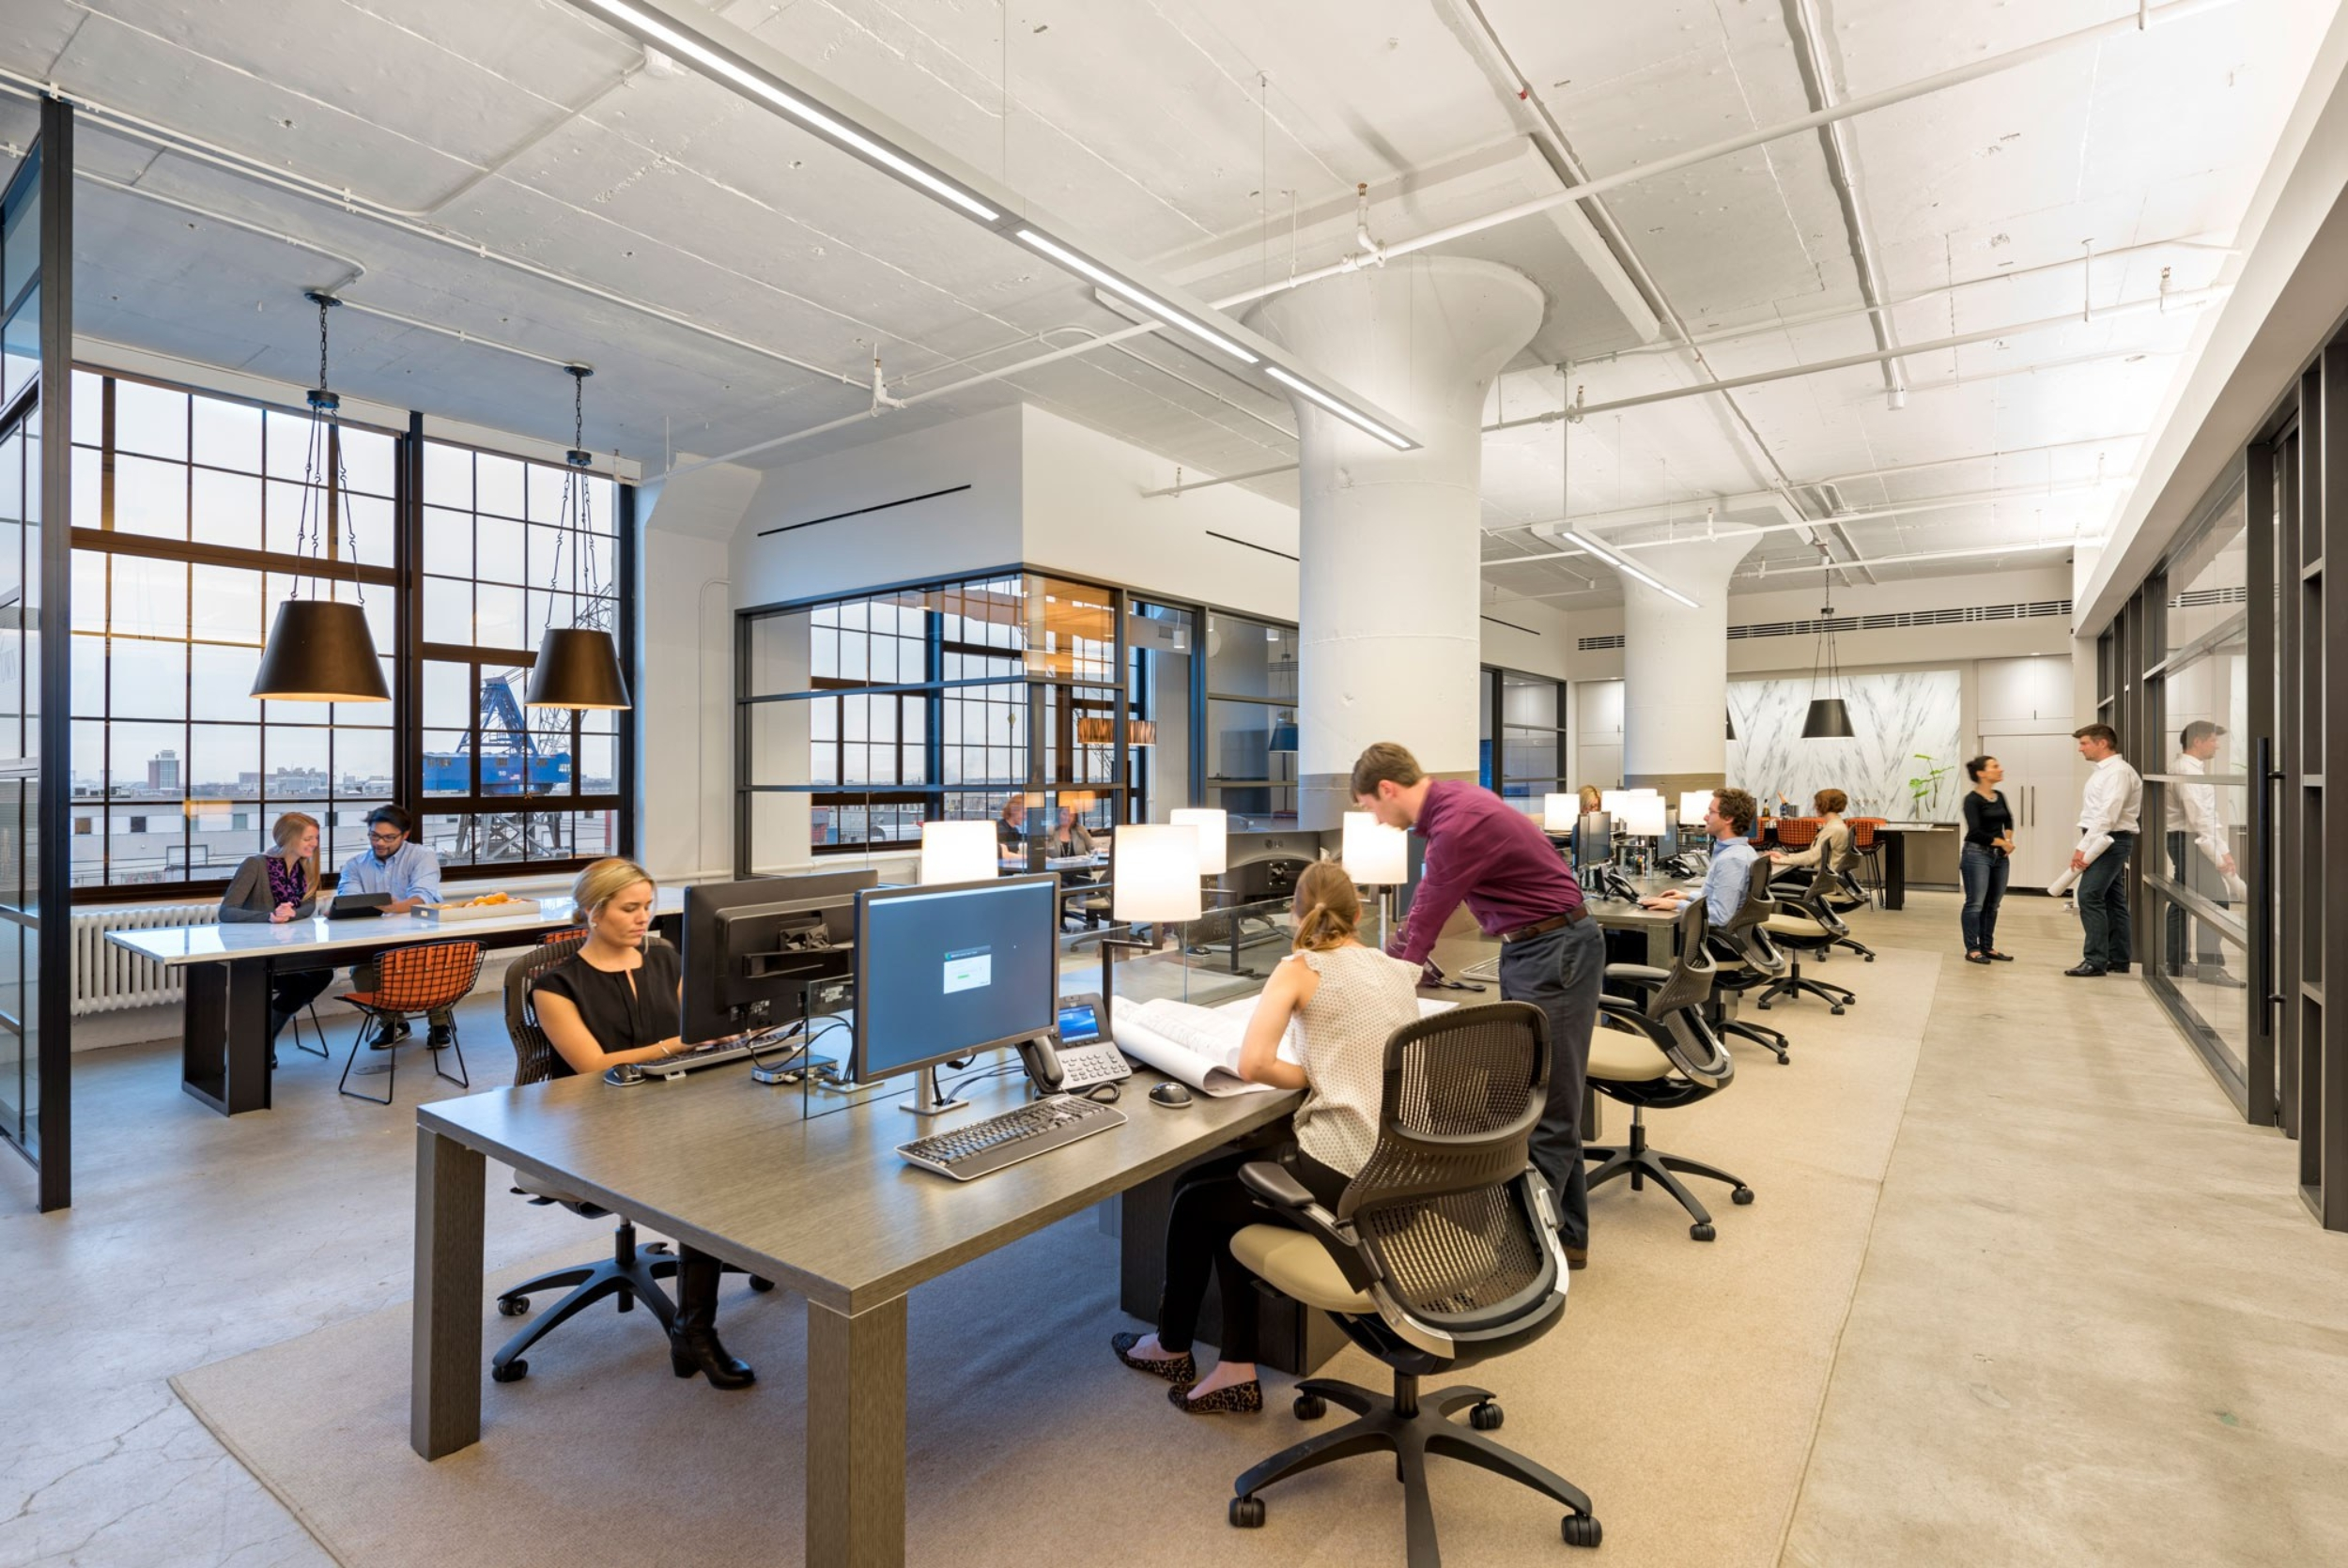 People working in large open office